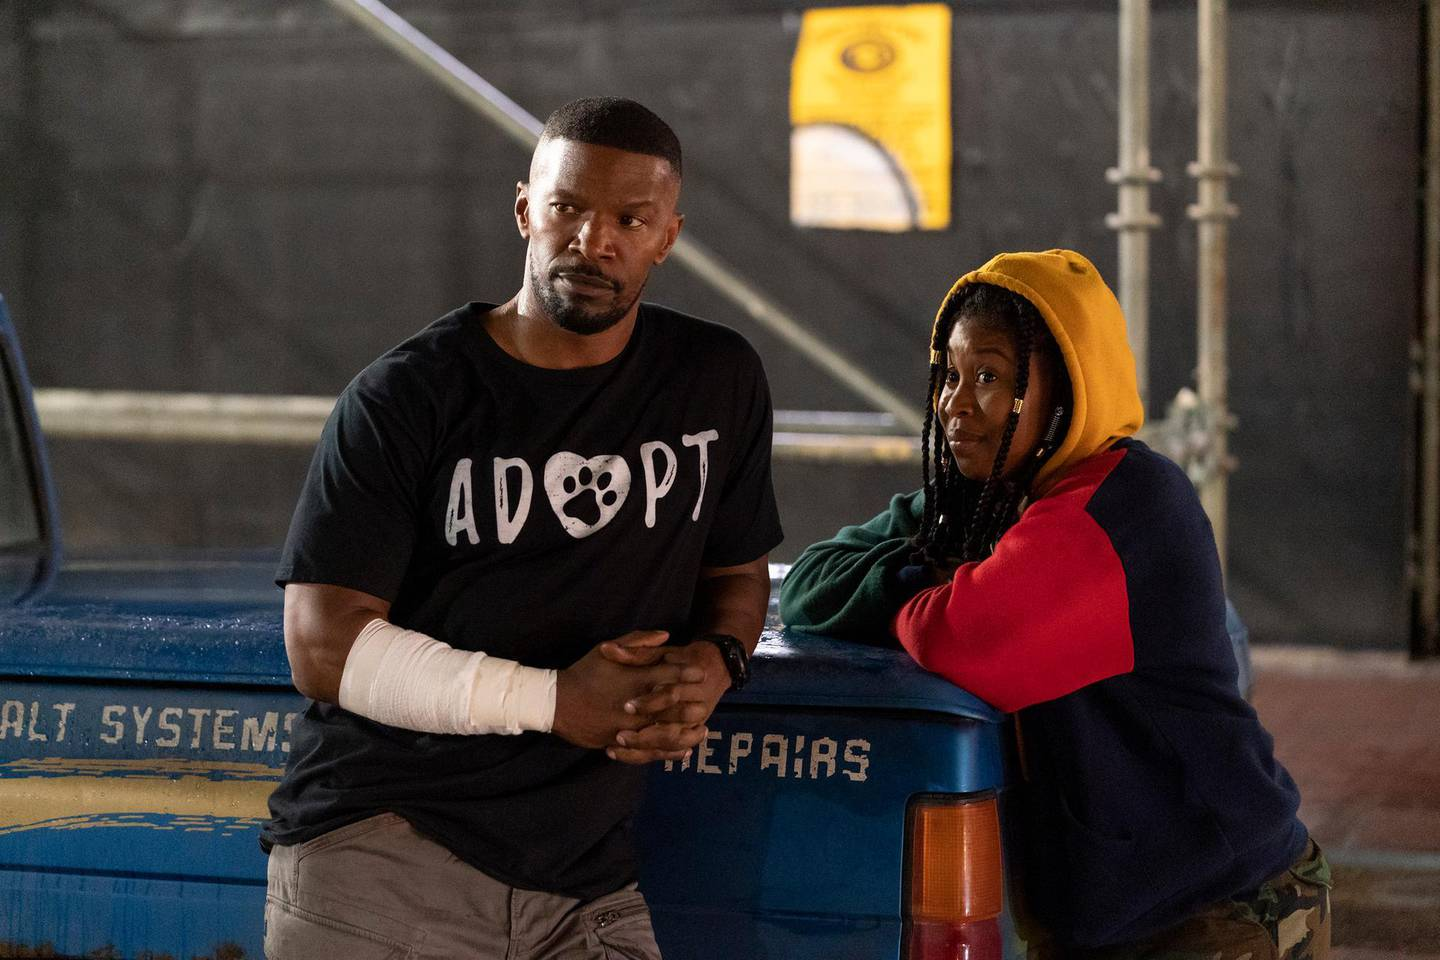 """This image released by Netflix shows Jamie Foxx, left, and Dominique Fishback in a scene from """"Project Power."""" The film, streaming Friday, imagines a world where a pill can give temporary superpowers. (Skip Bolen/Netflix via AP)"""